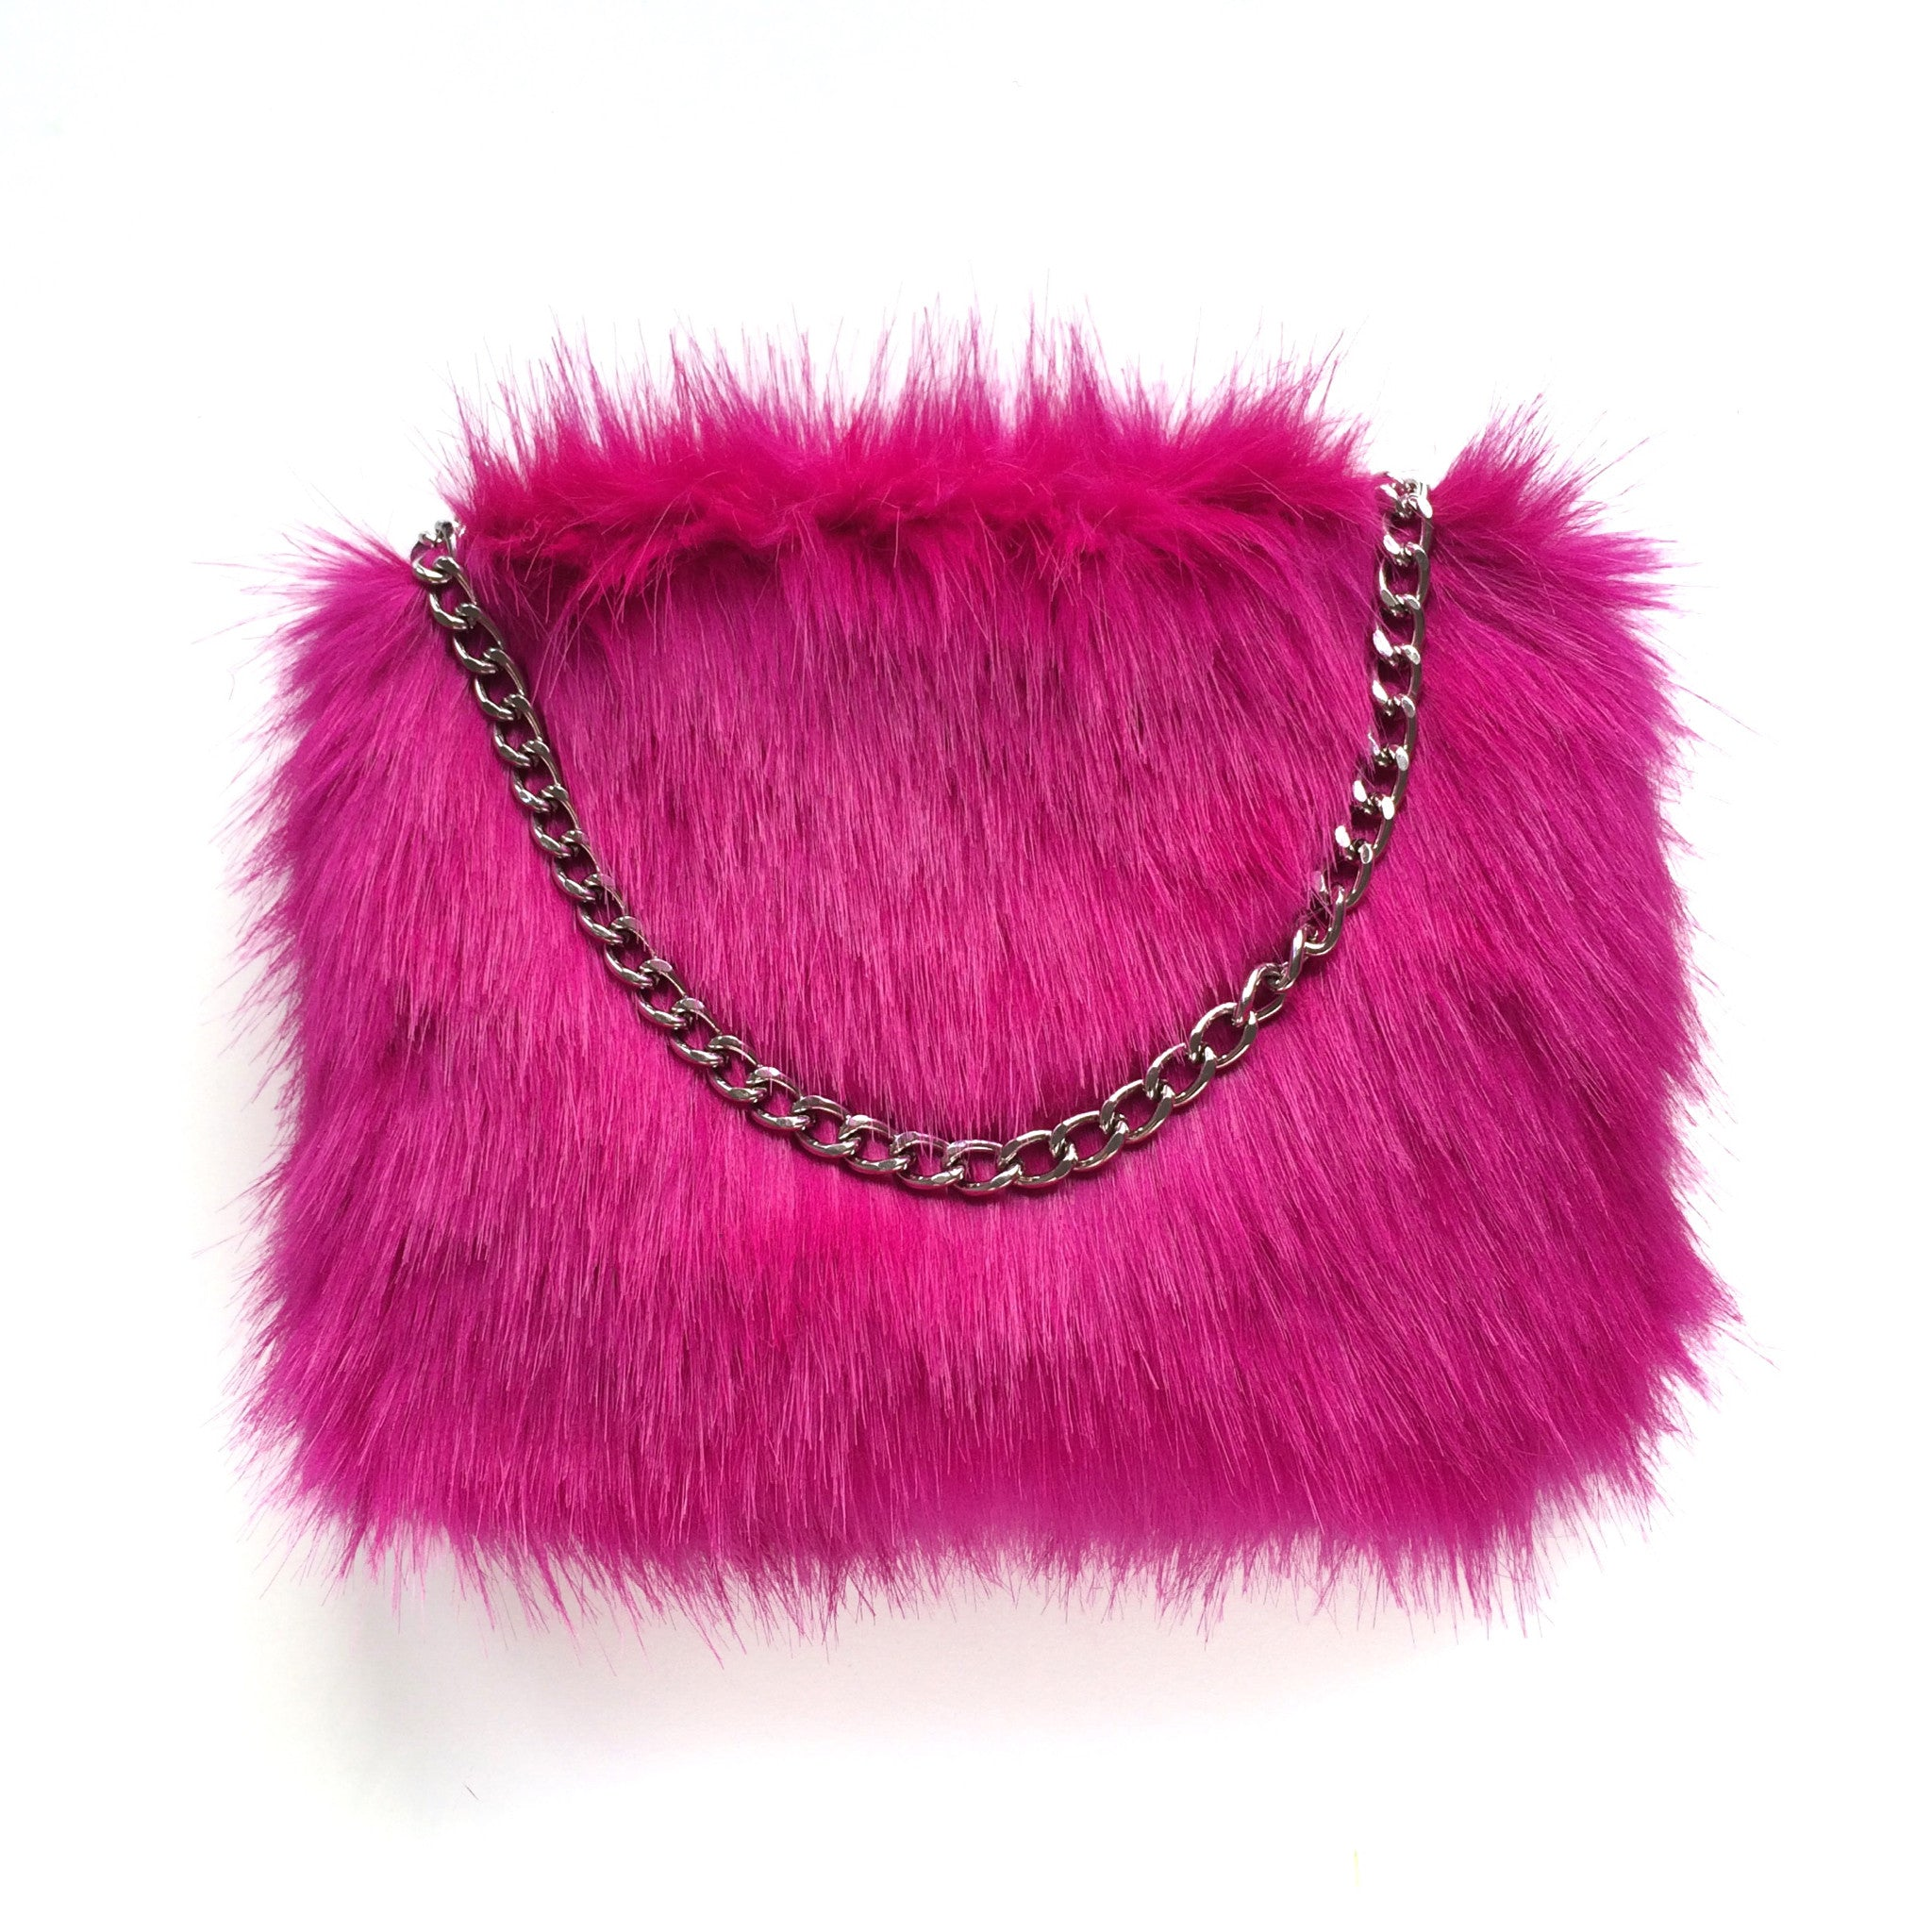 LAST CHANCE FUCHSIA PURSE